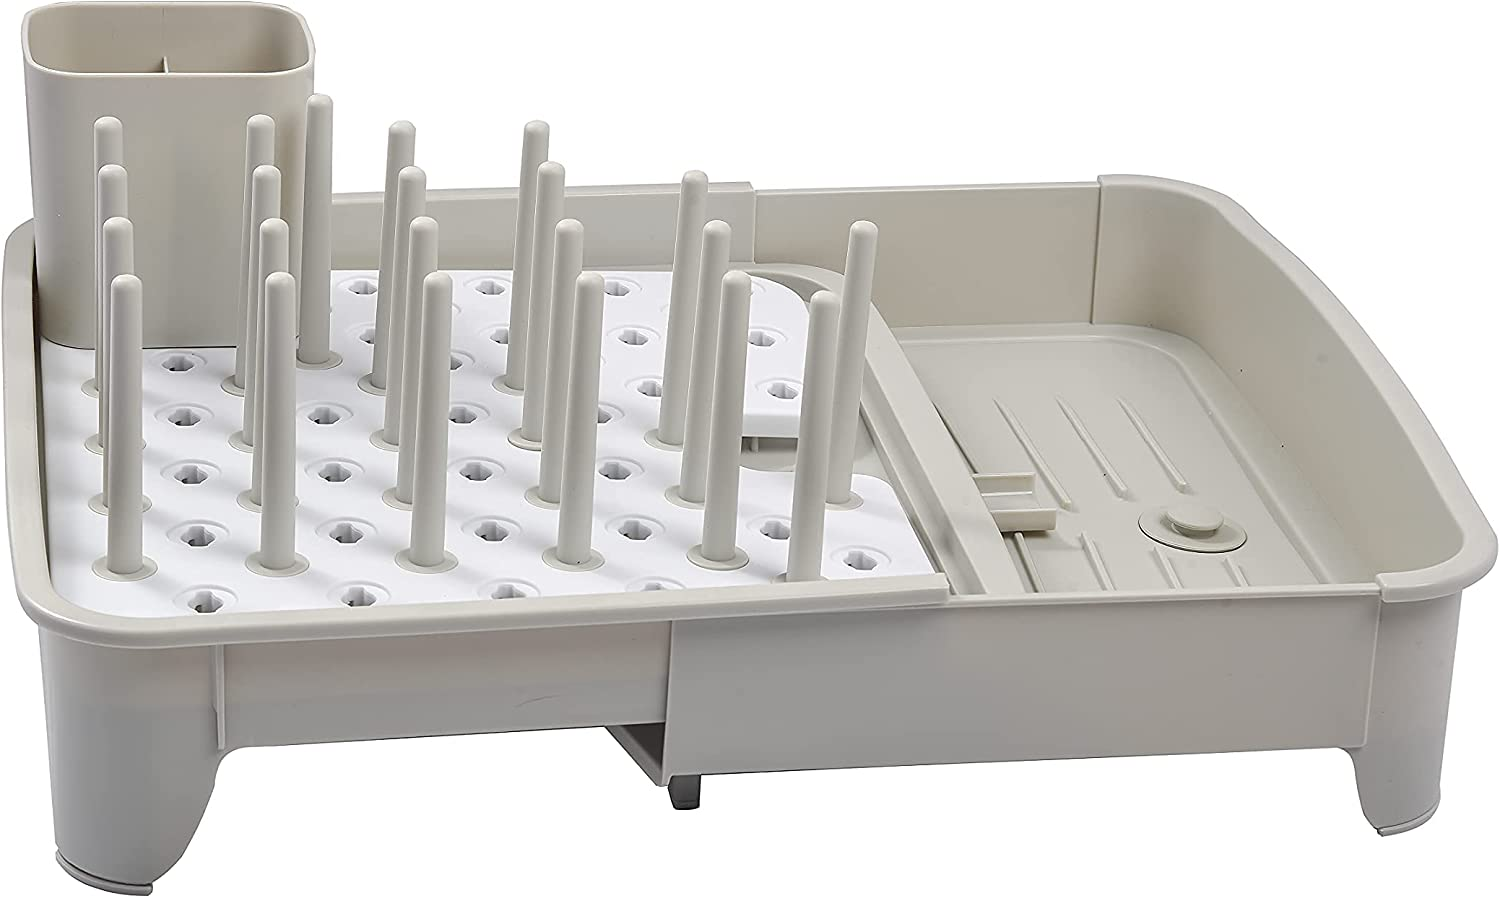 Extend Expandable Dish Rack for Indefinitely Super Special SALE held Kitchen Sto Organizer Countertop